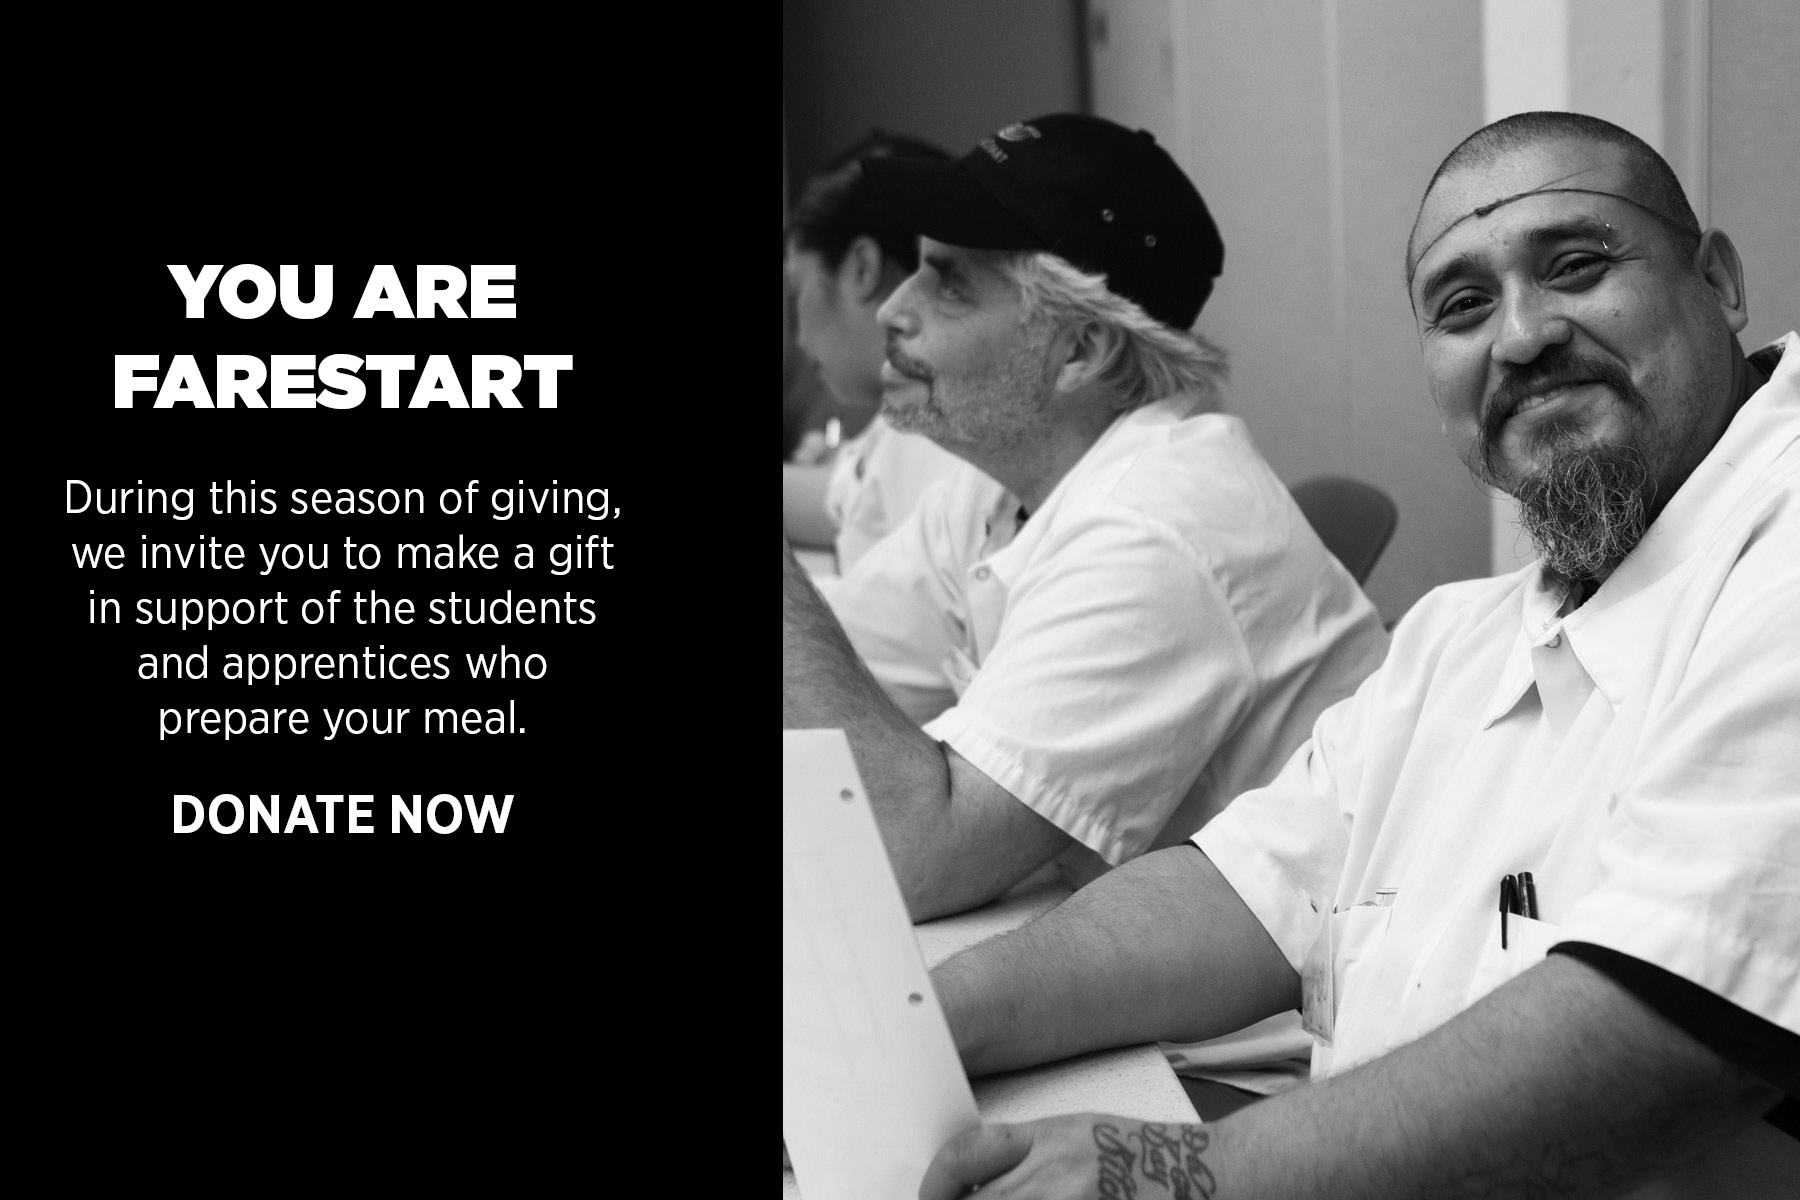 You are FareStart. Students change their lives with your support.